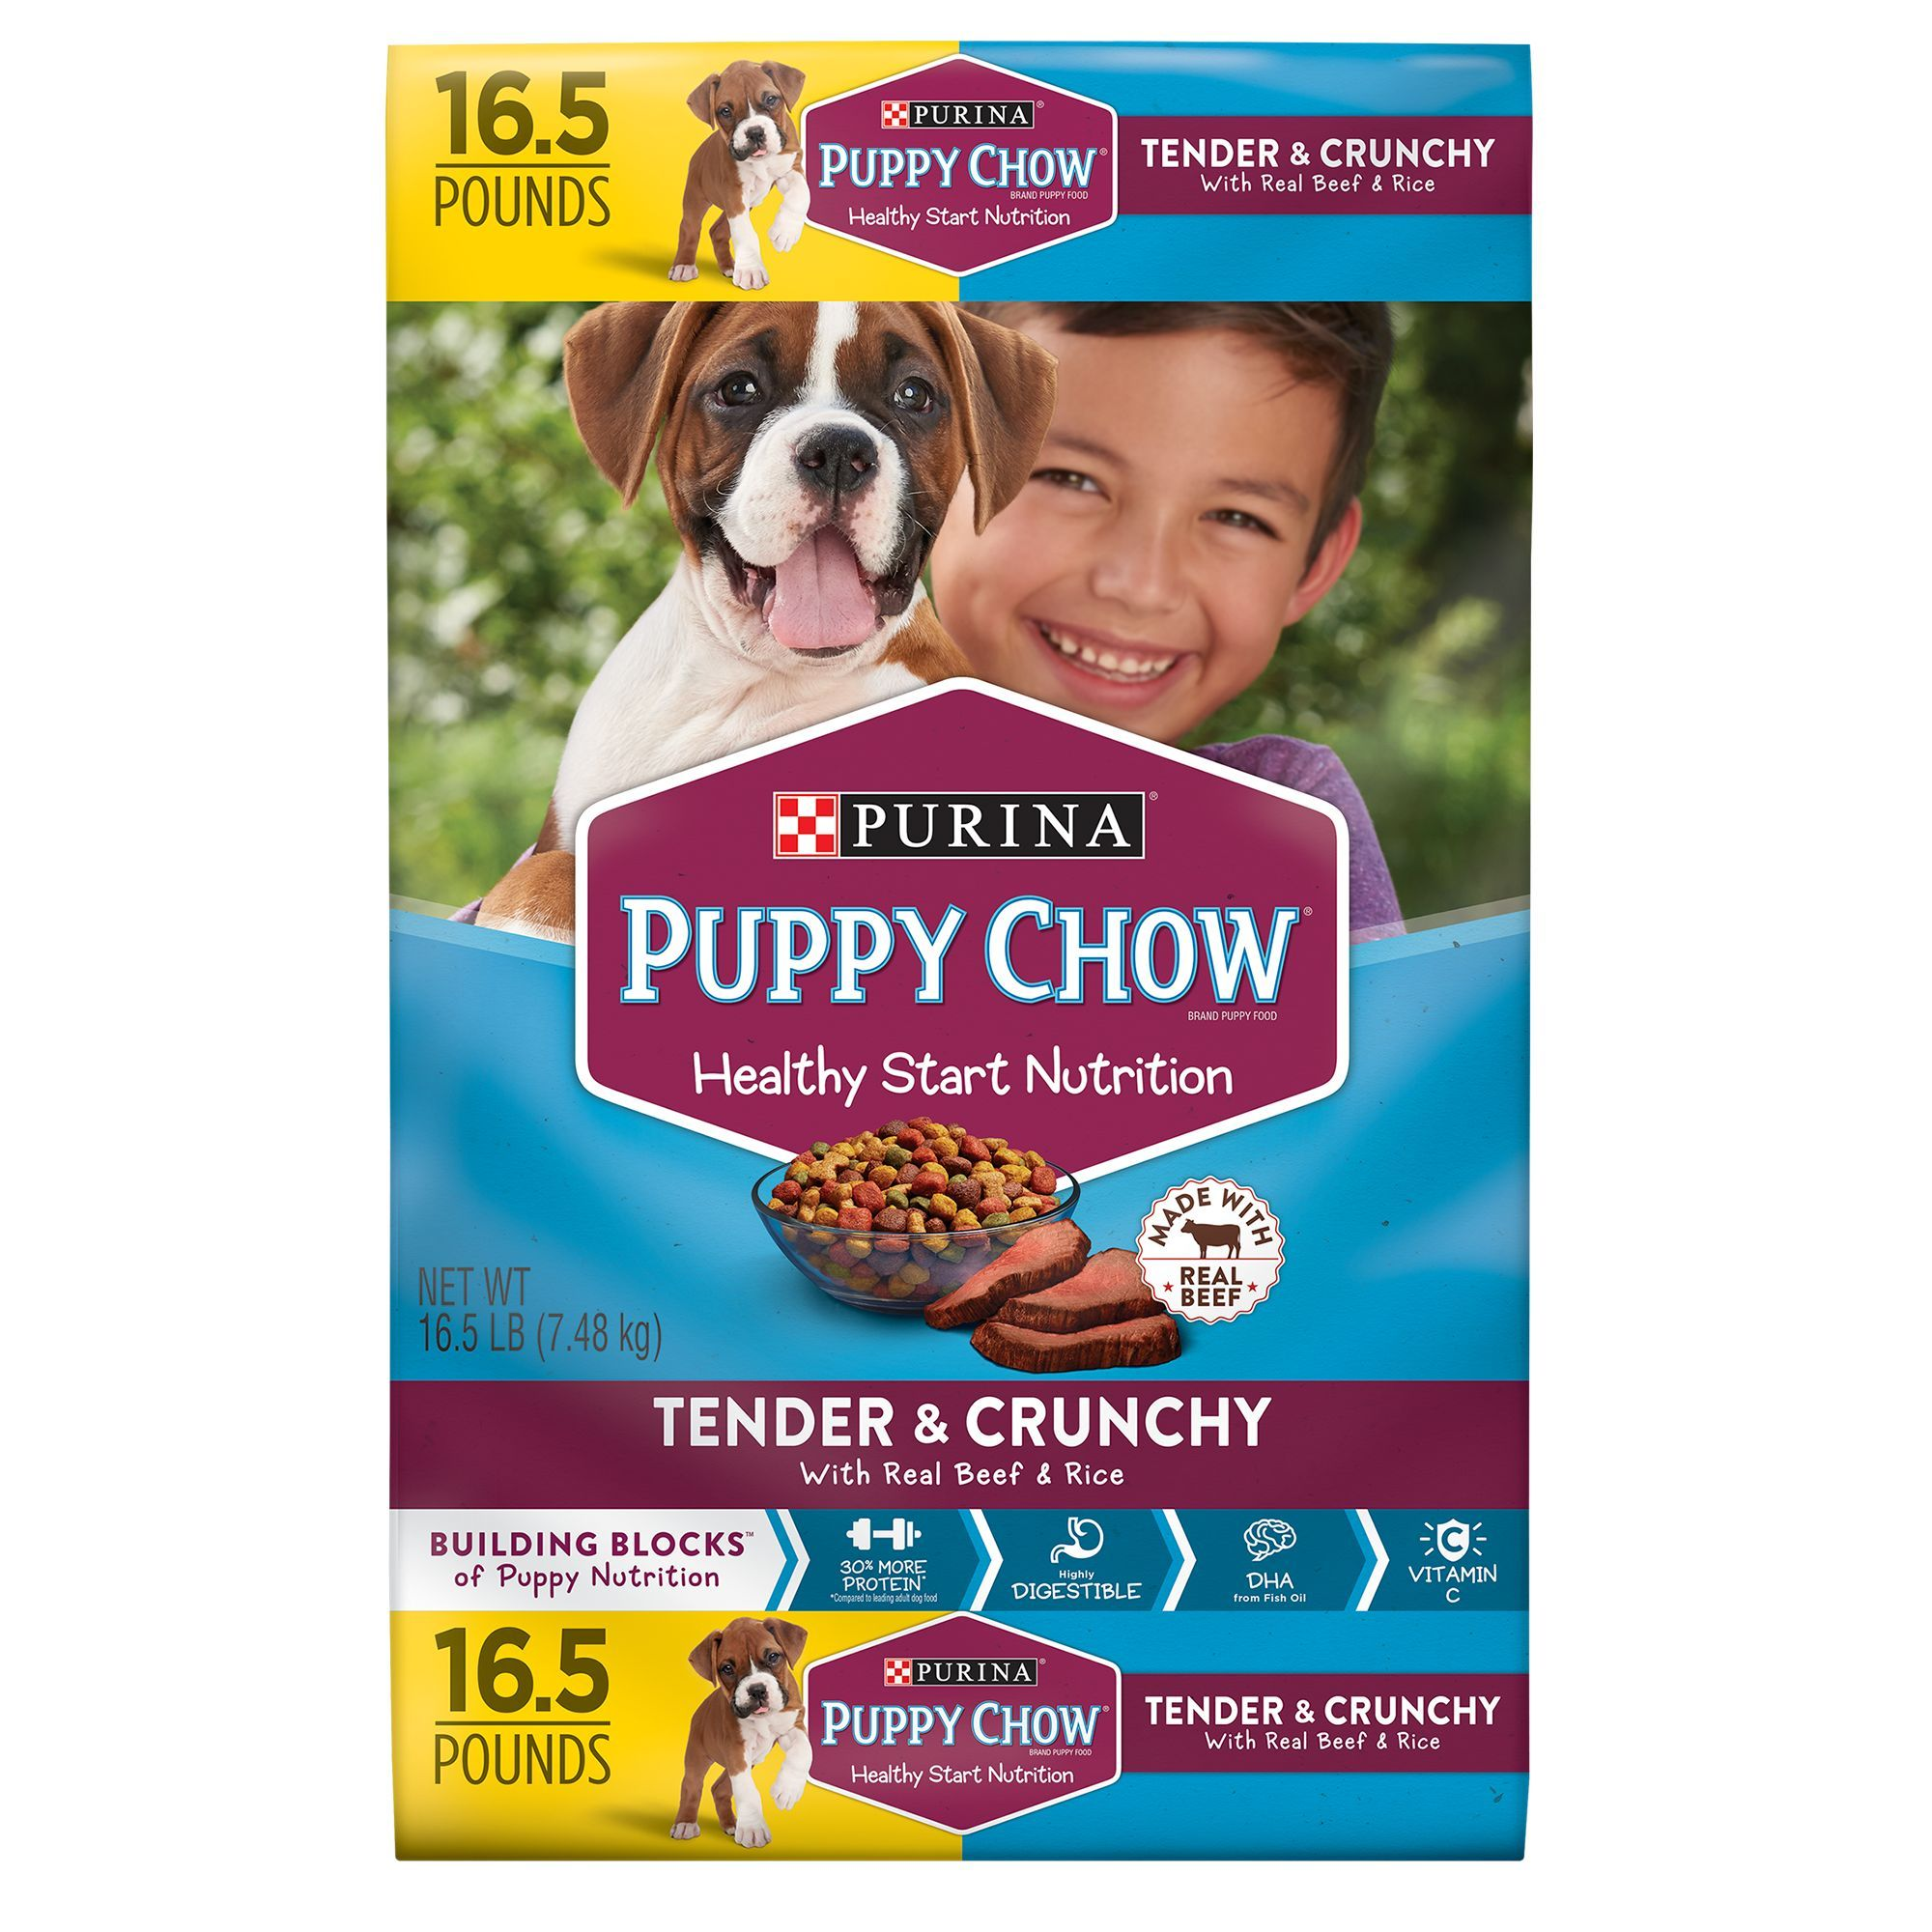 Purina Puppy Chow Healthy Morsels Puppy Food Size 16 5 Lb Purina